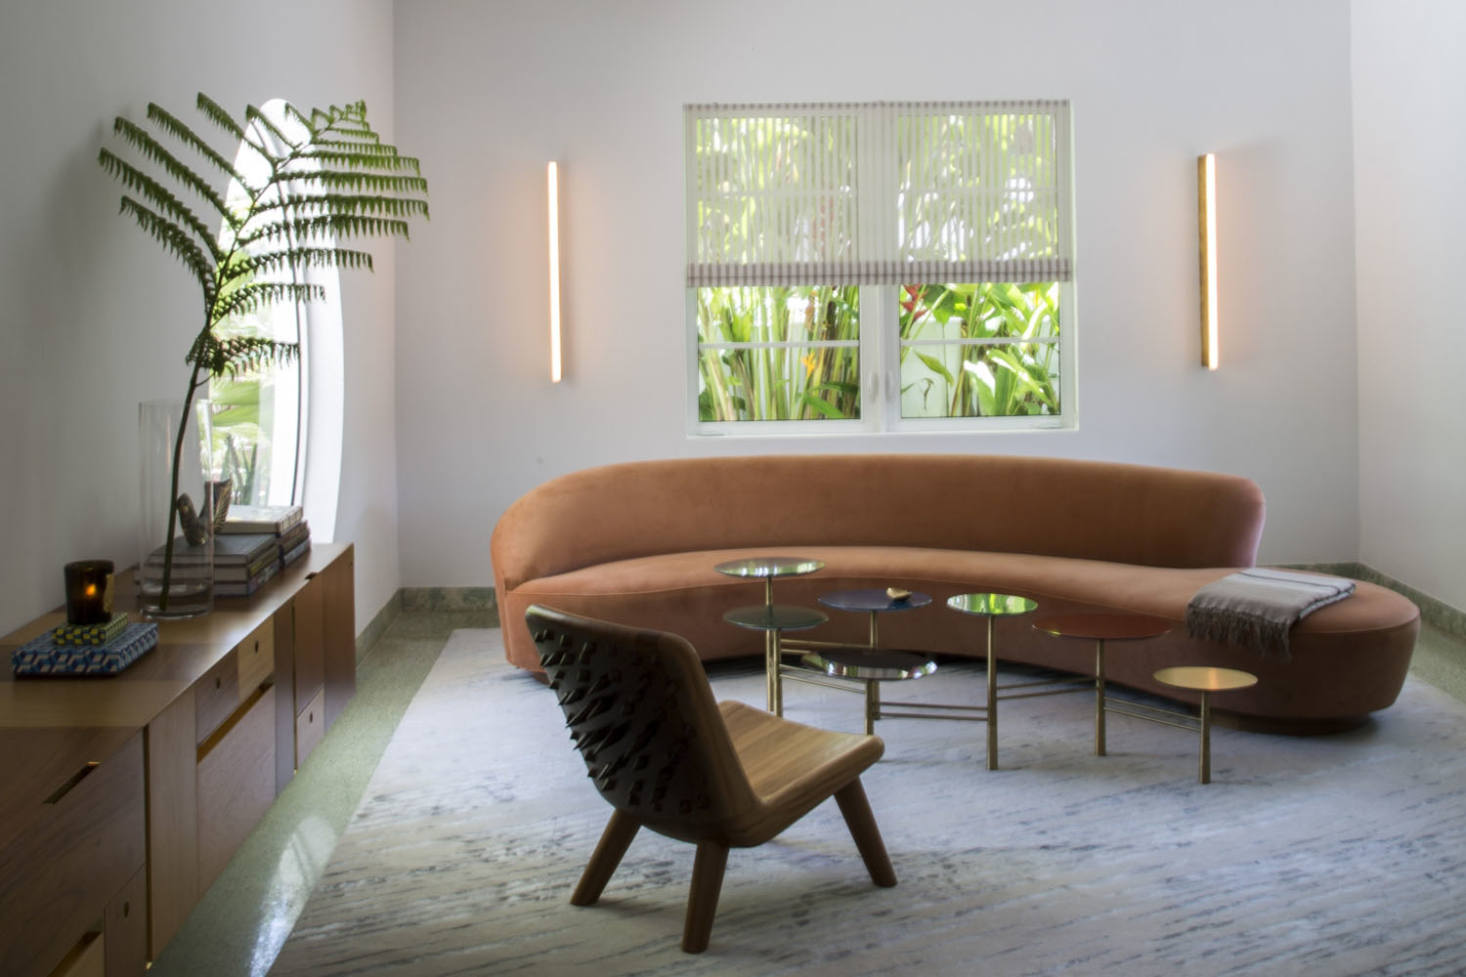 10 Easy Pieces: Curved Sofas